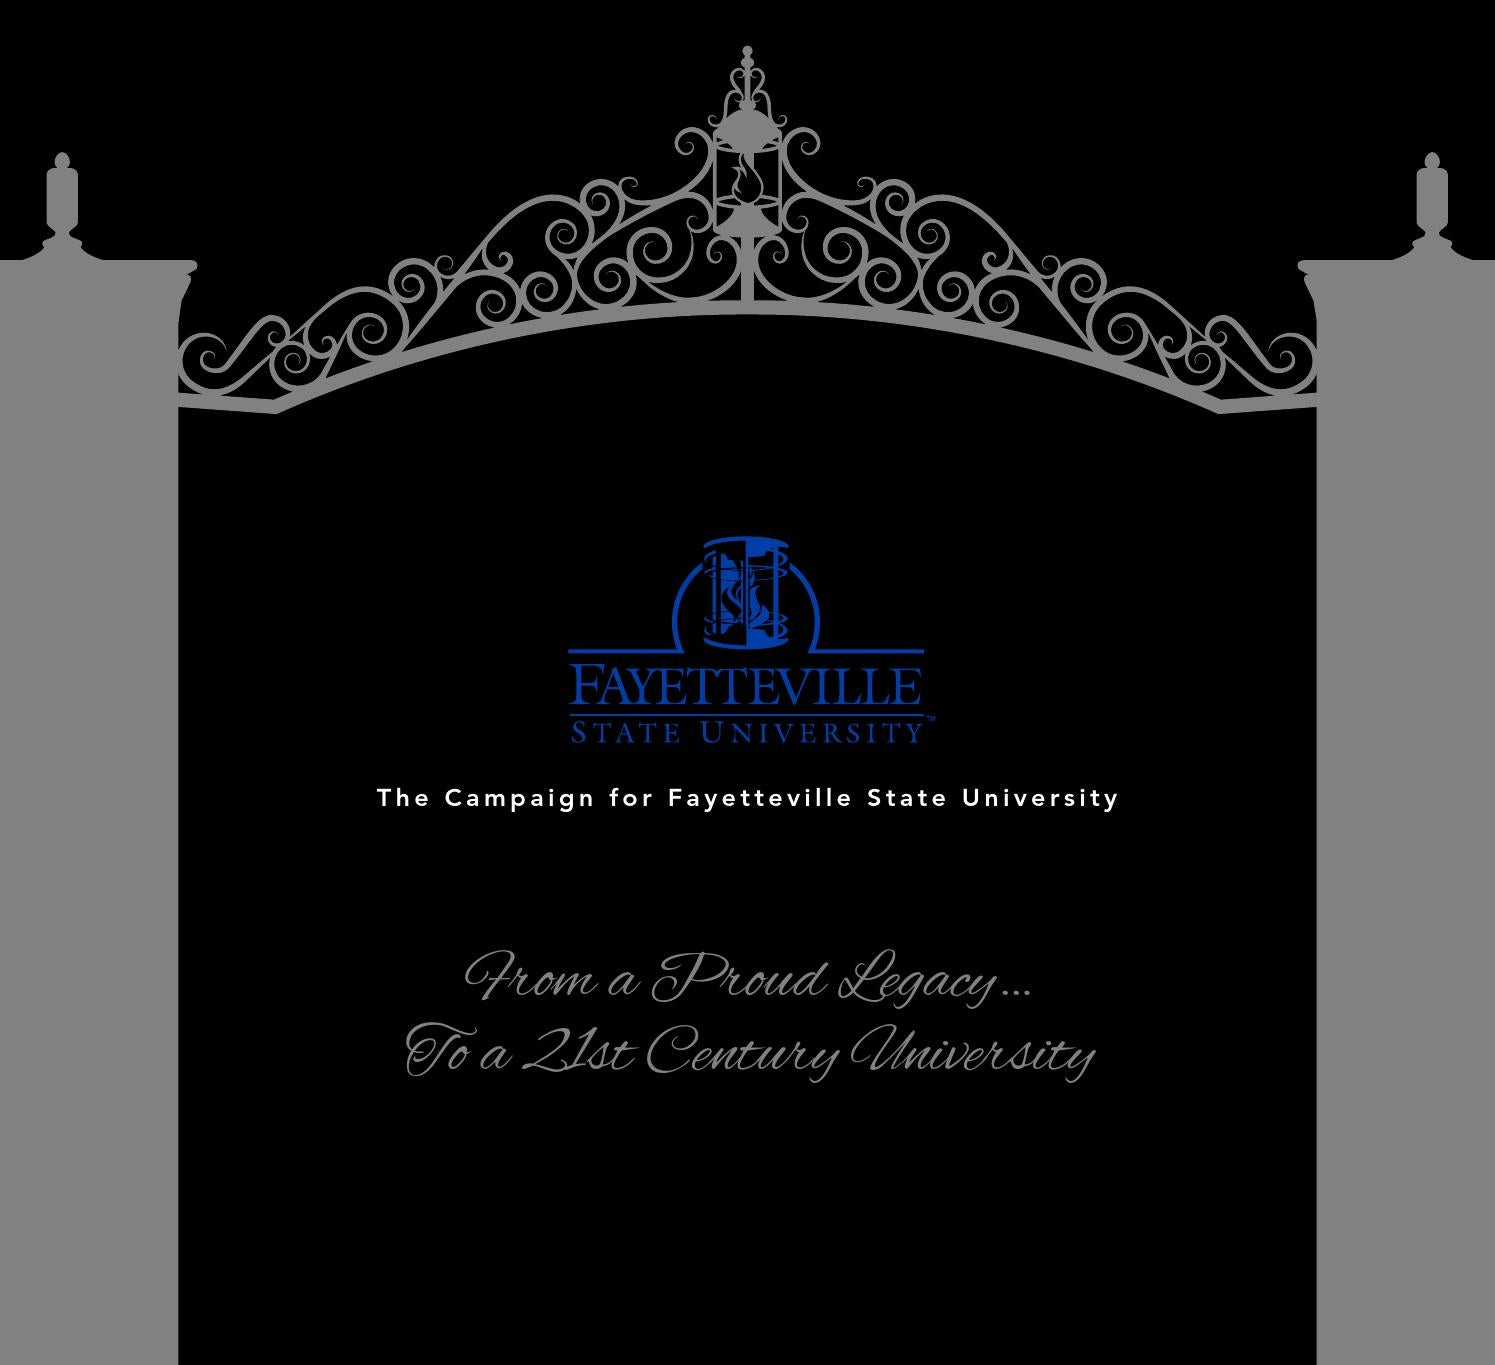 Fayetteville State University S Center For Defense And: FSU Case For Support By Fayetteville State University